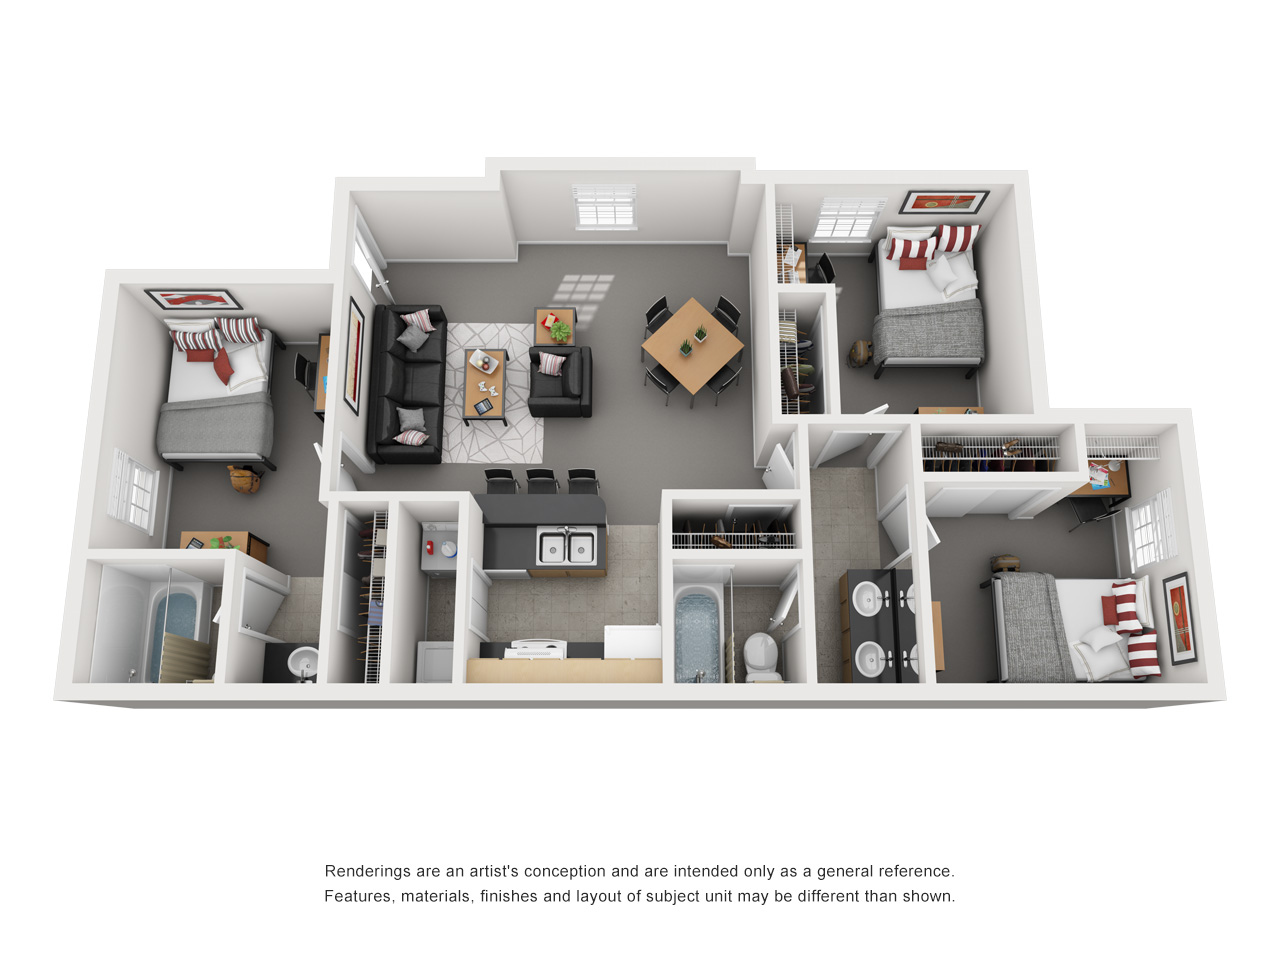 Floor plan of a 3 bed, 2 bath student apartment